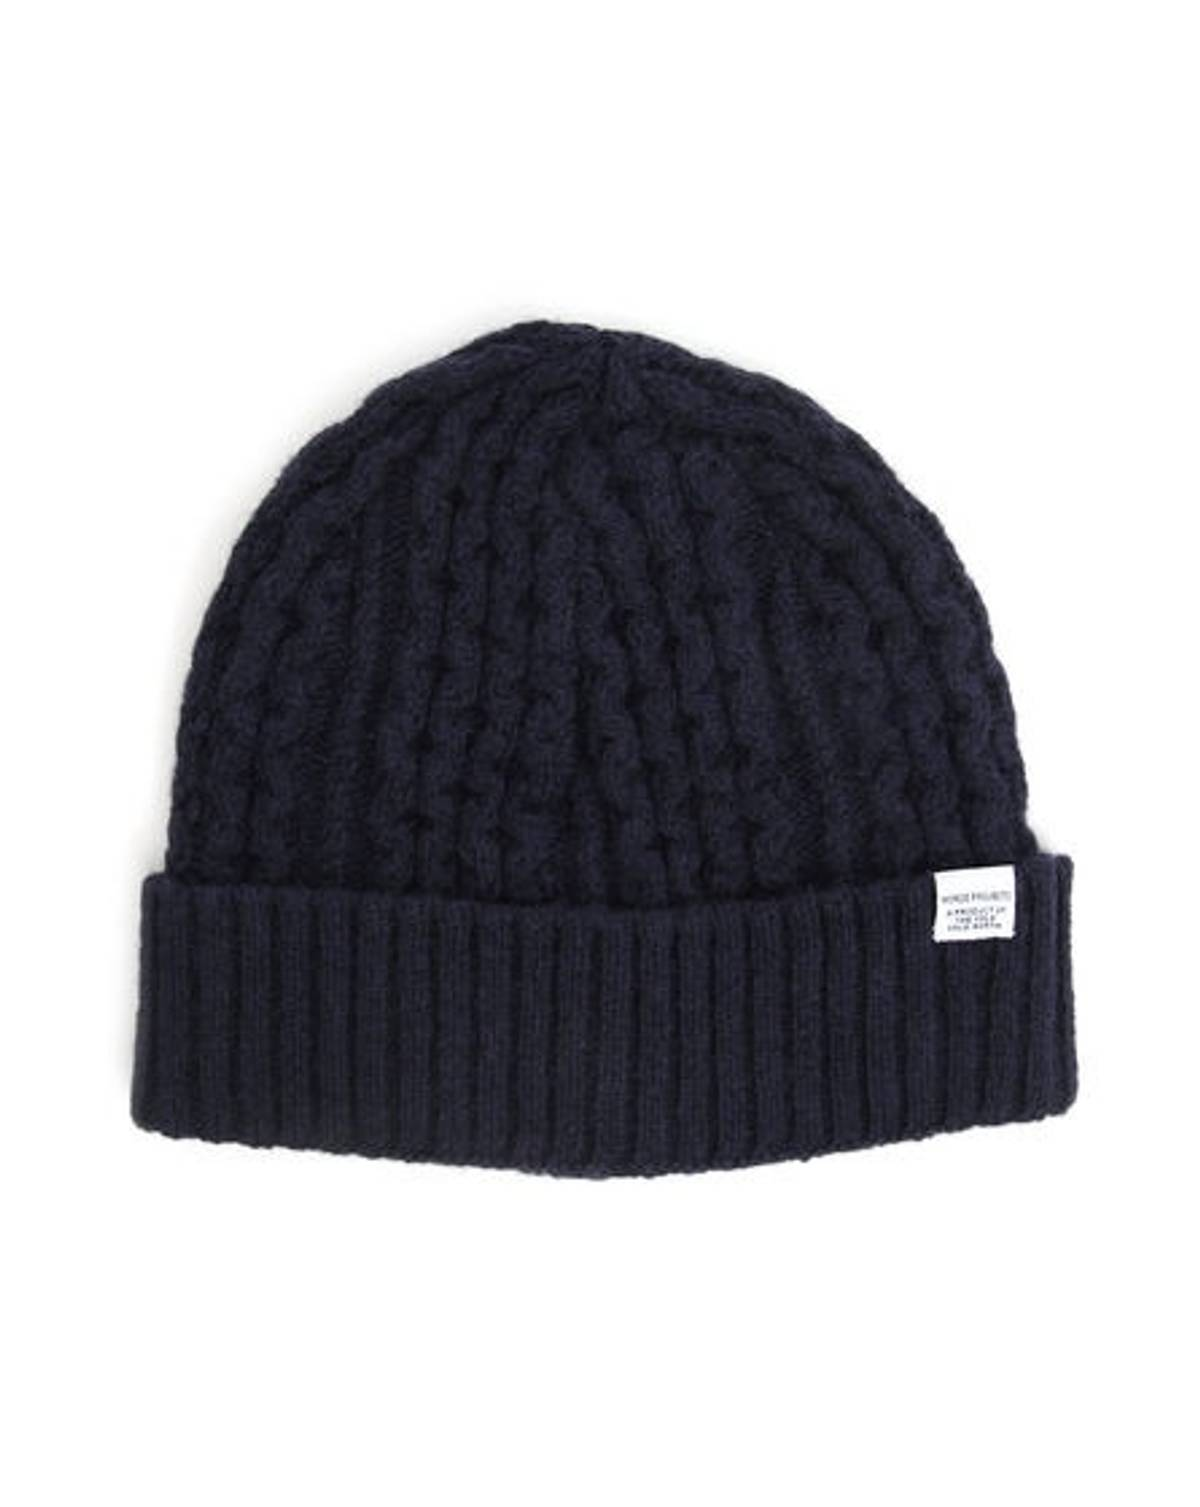 fdd5ccbd19b Norse Projects  70 Wool Cable Knit Beanie